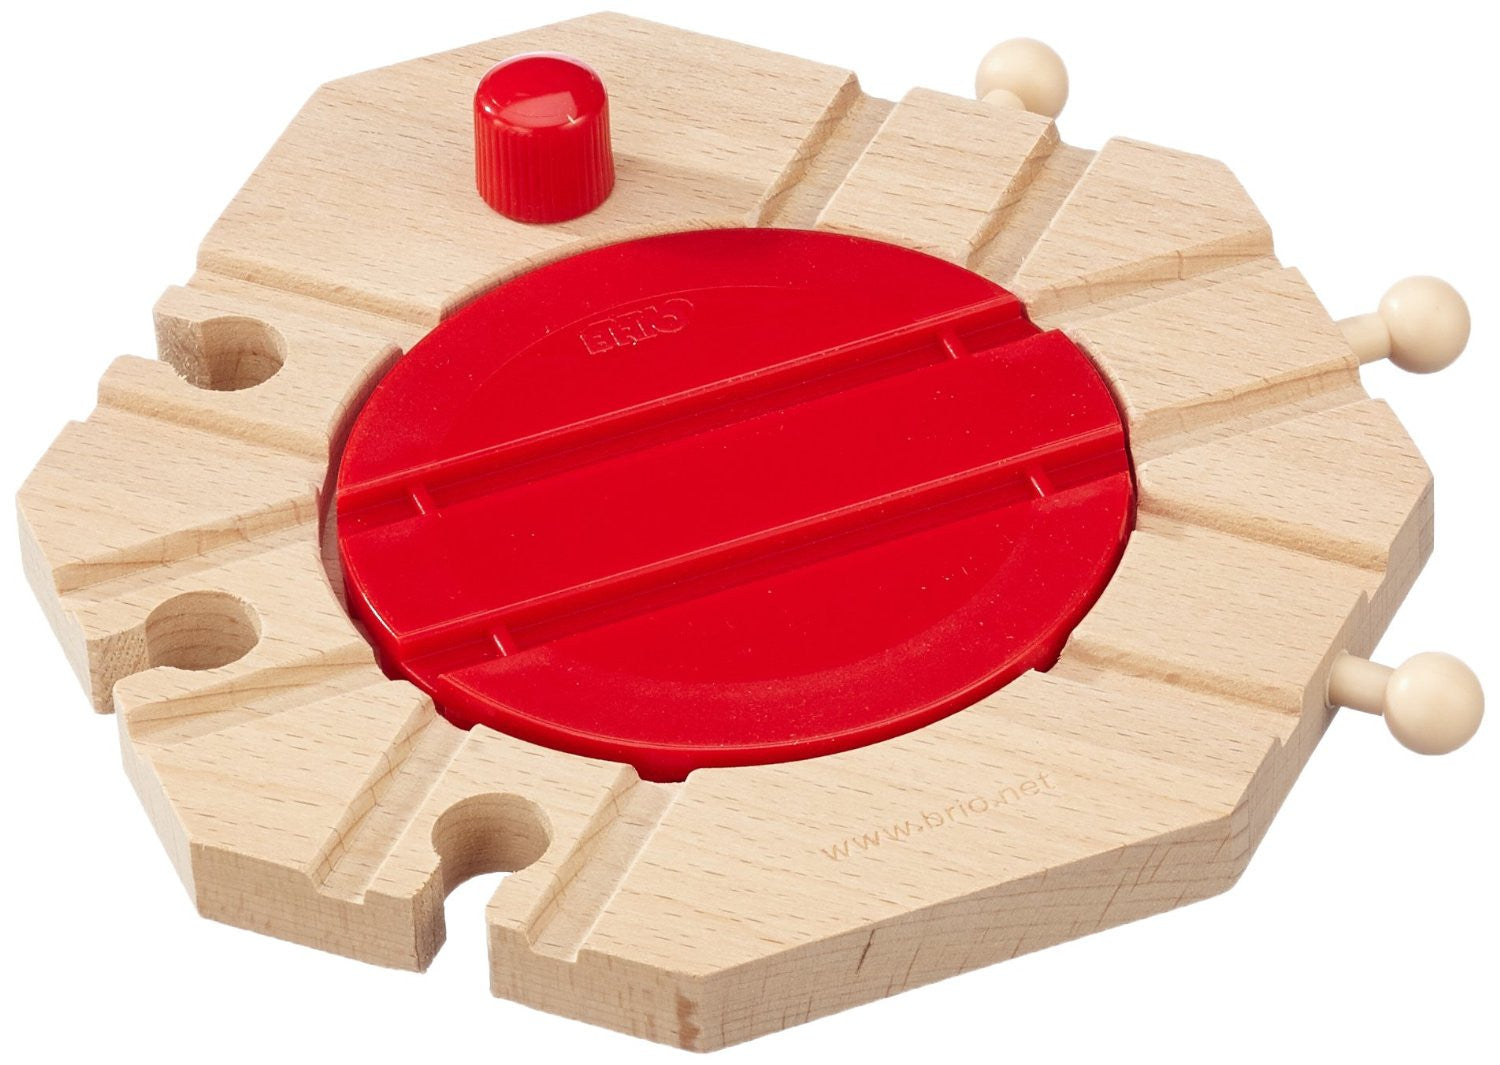 Brio Mechanical Turntable